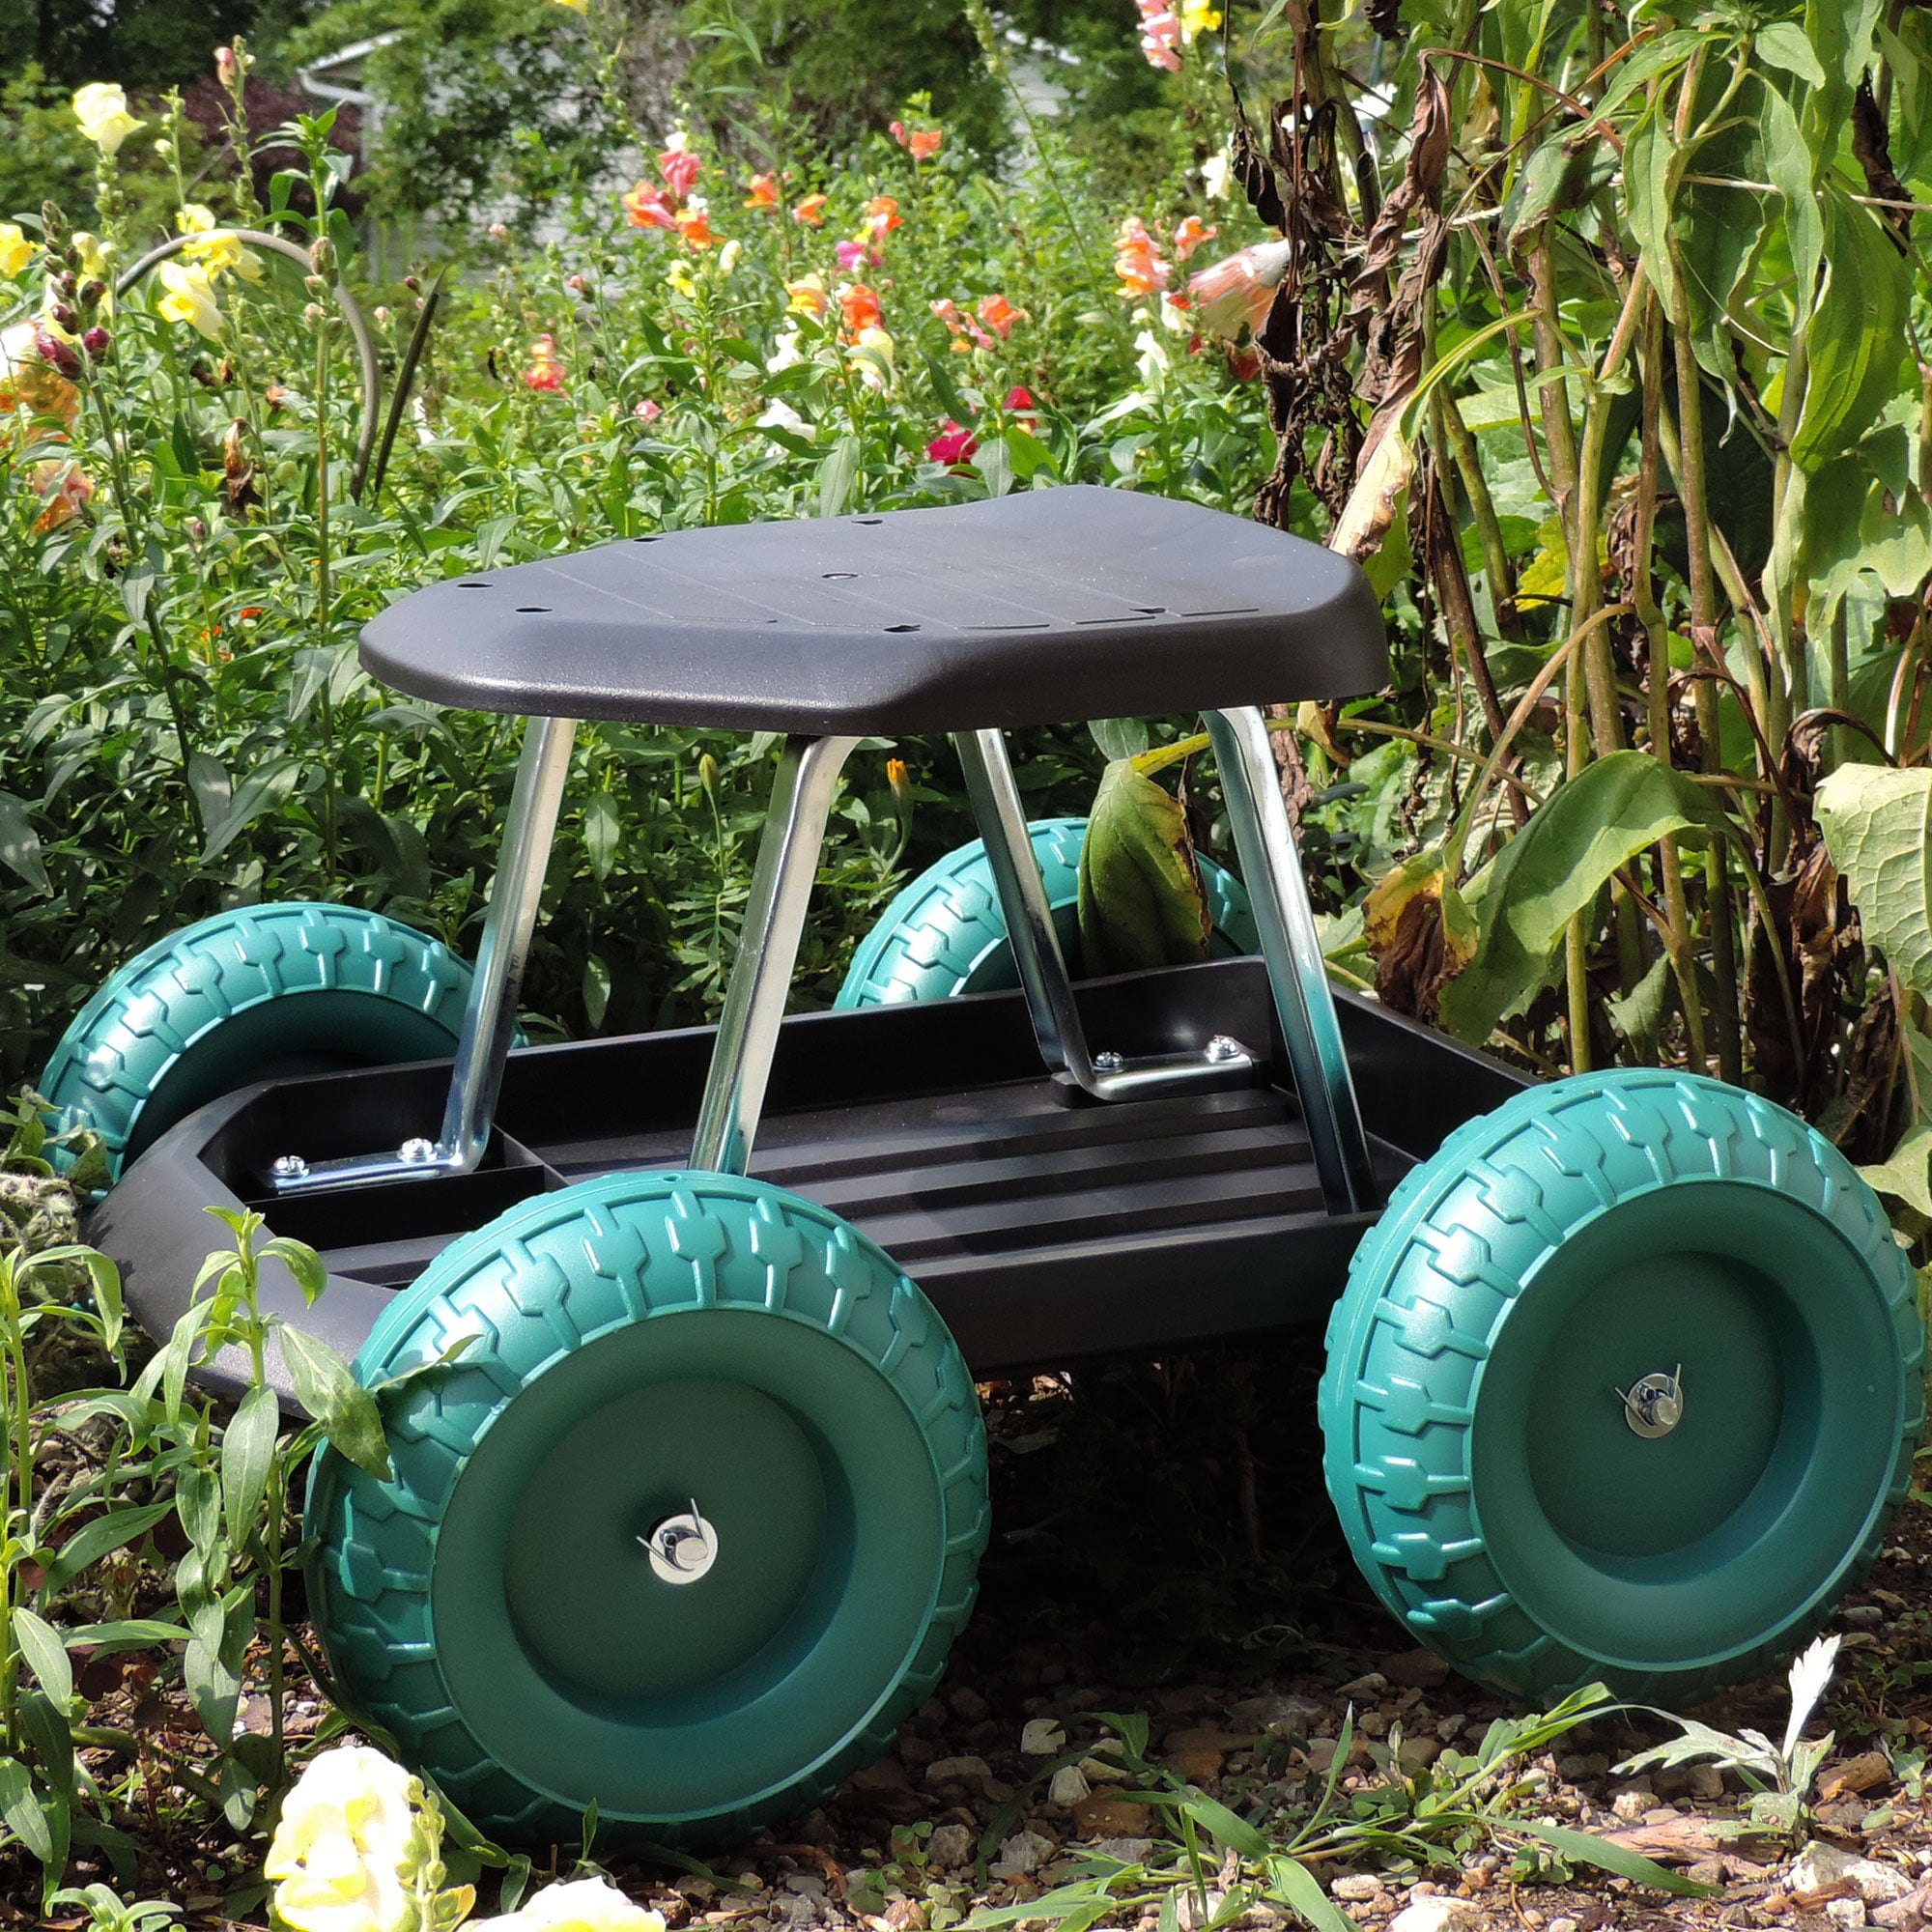 Rolling Garden Work Scooter with Tool Tray by Pure Garden by Trademark Global LLC